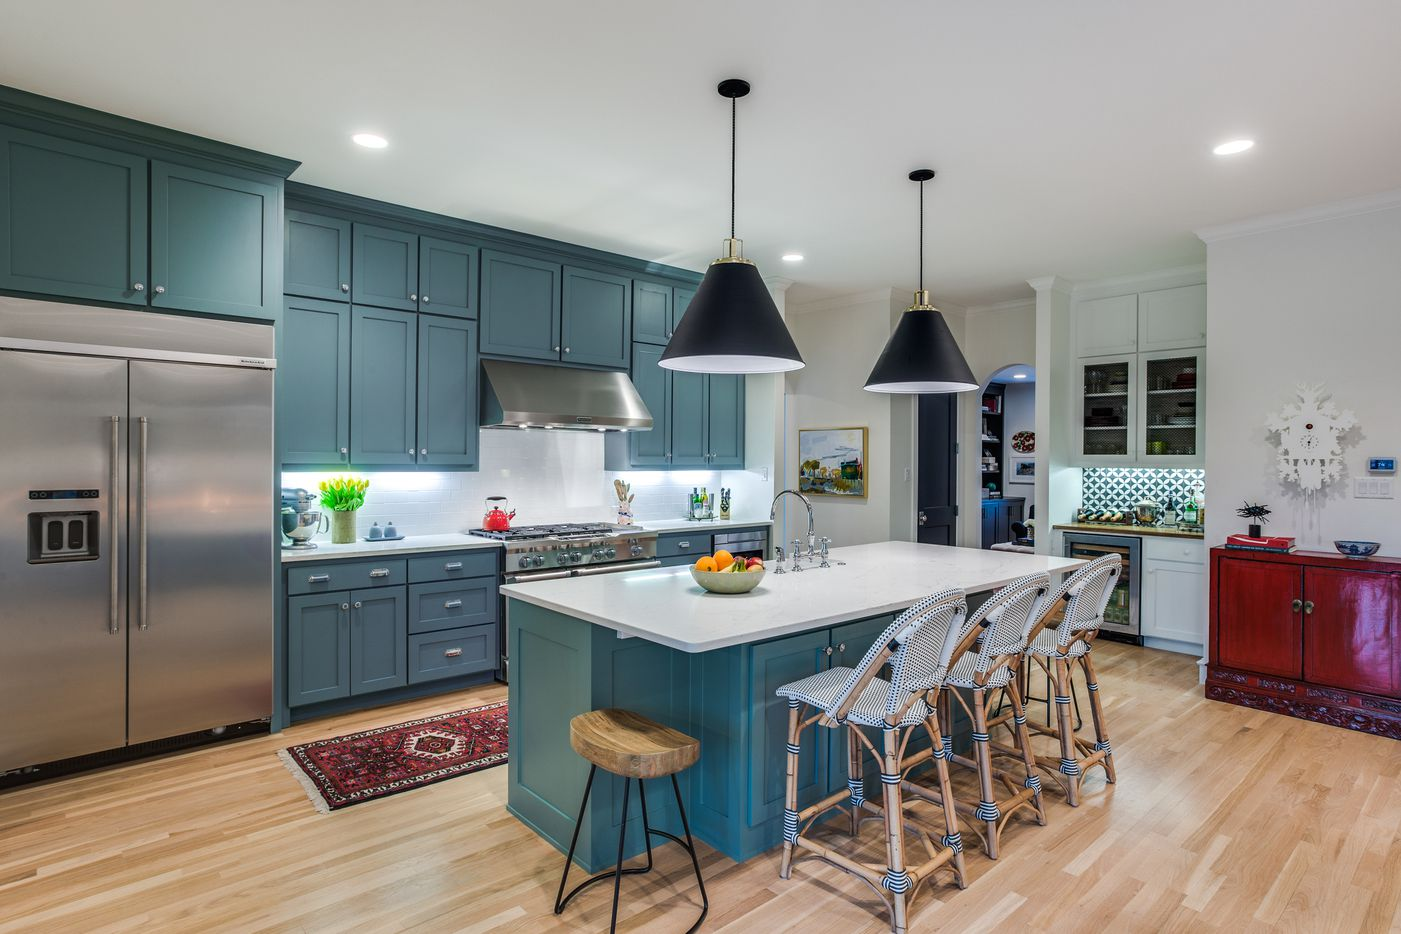 The buyer of Thomas Development + Construction's house wanted a New England look.